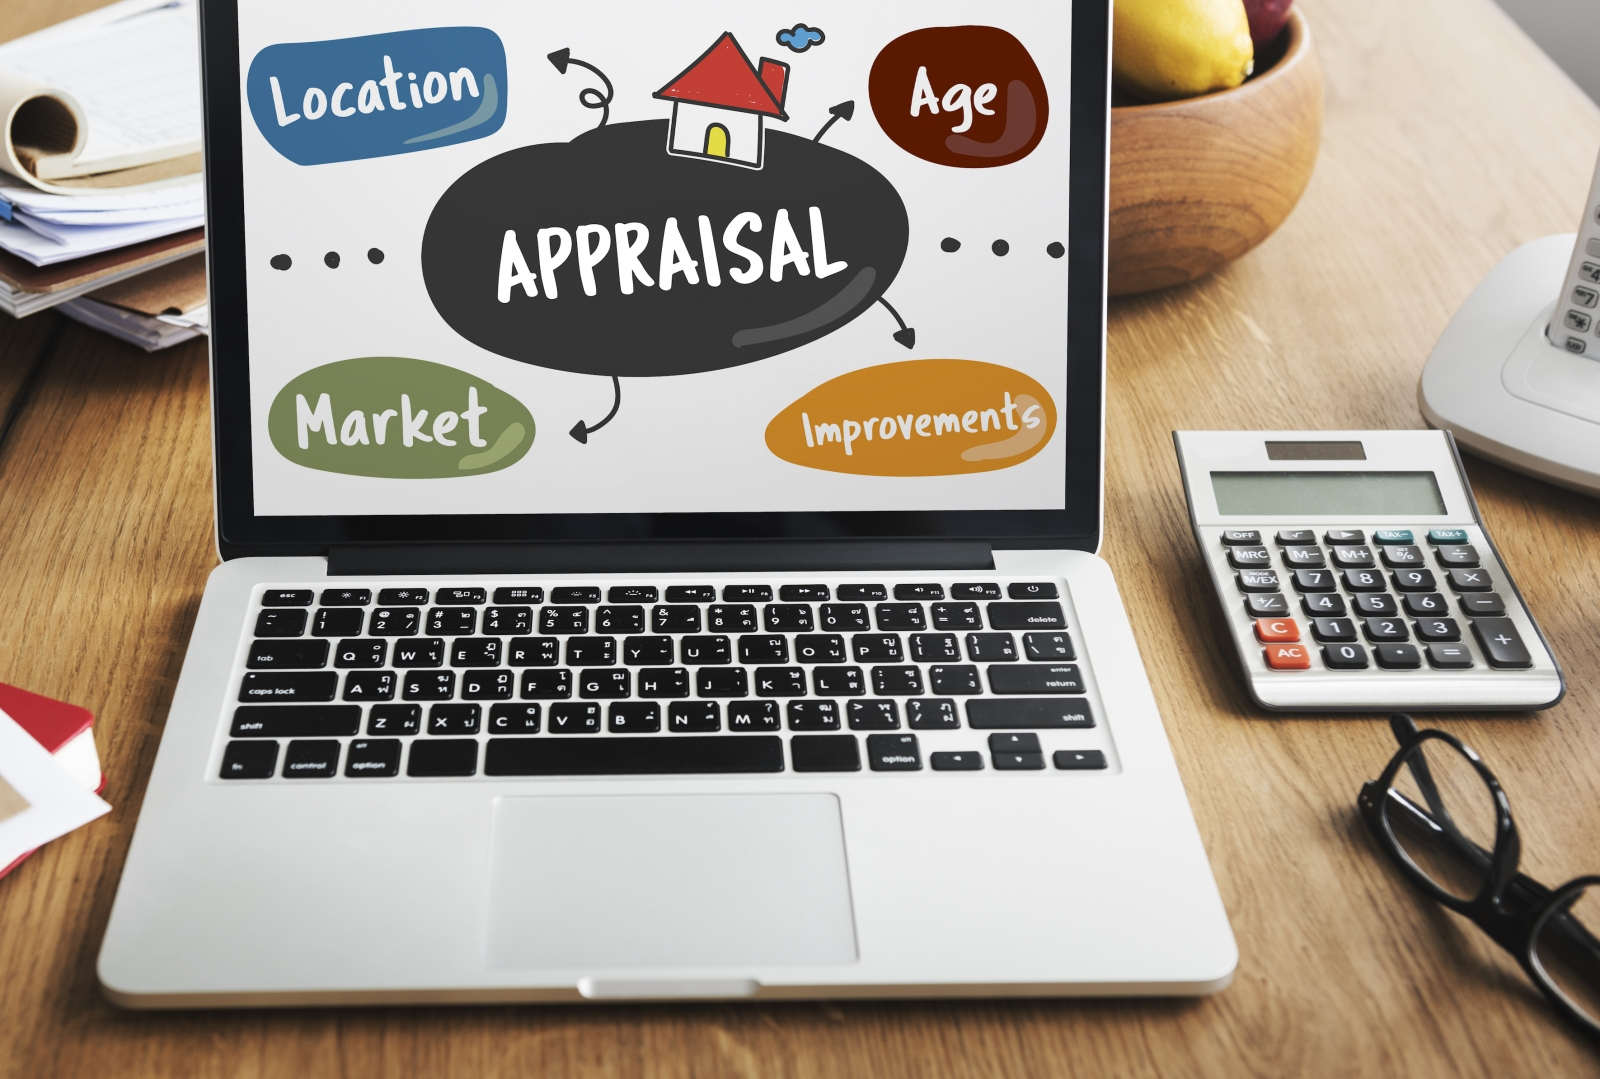 what is the function of an appraisal